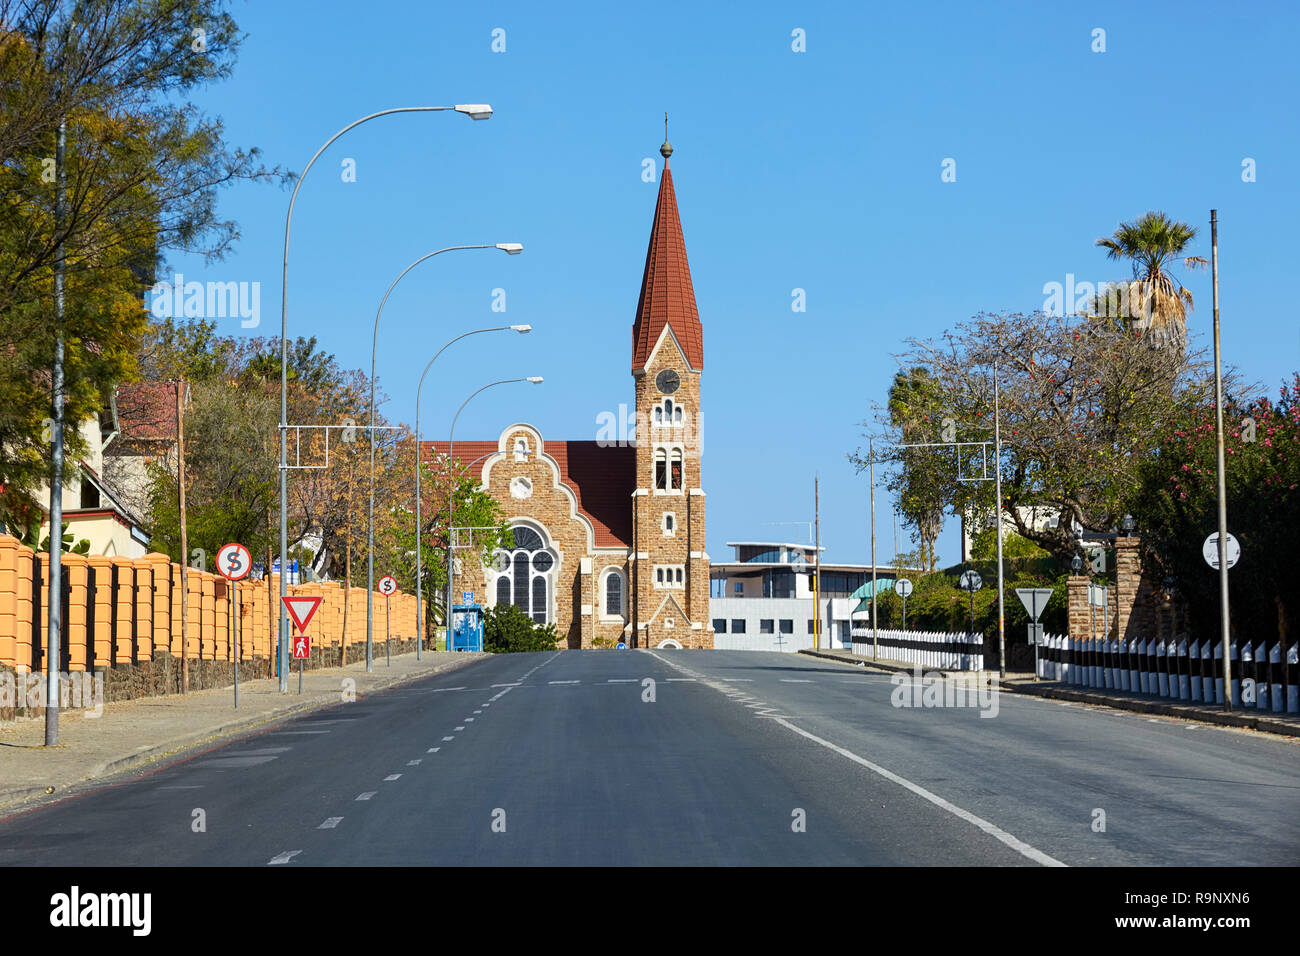 Christus kirche Christuskirche Christ Church on Robert Mugabe Avenue in Windhoek Namibia Africa - Stock Image